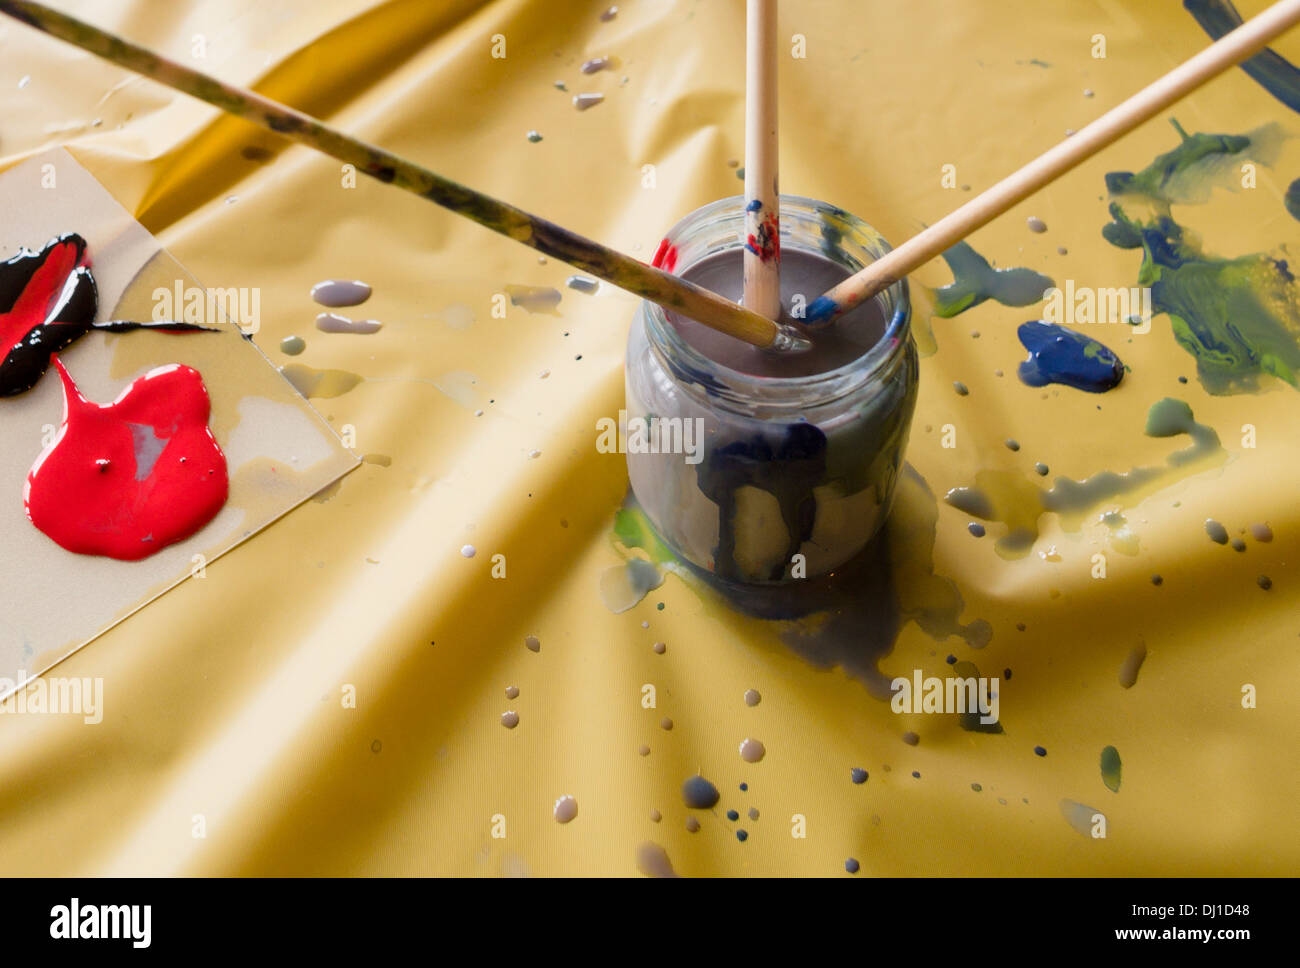 After Painting. Three brushes in a dirty pot of water on a yellow table cloth with spots of paint scattered. - Stock Image